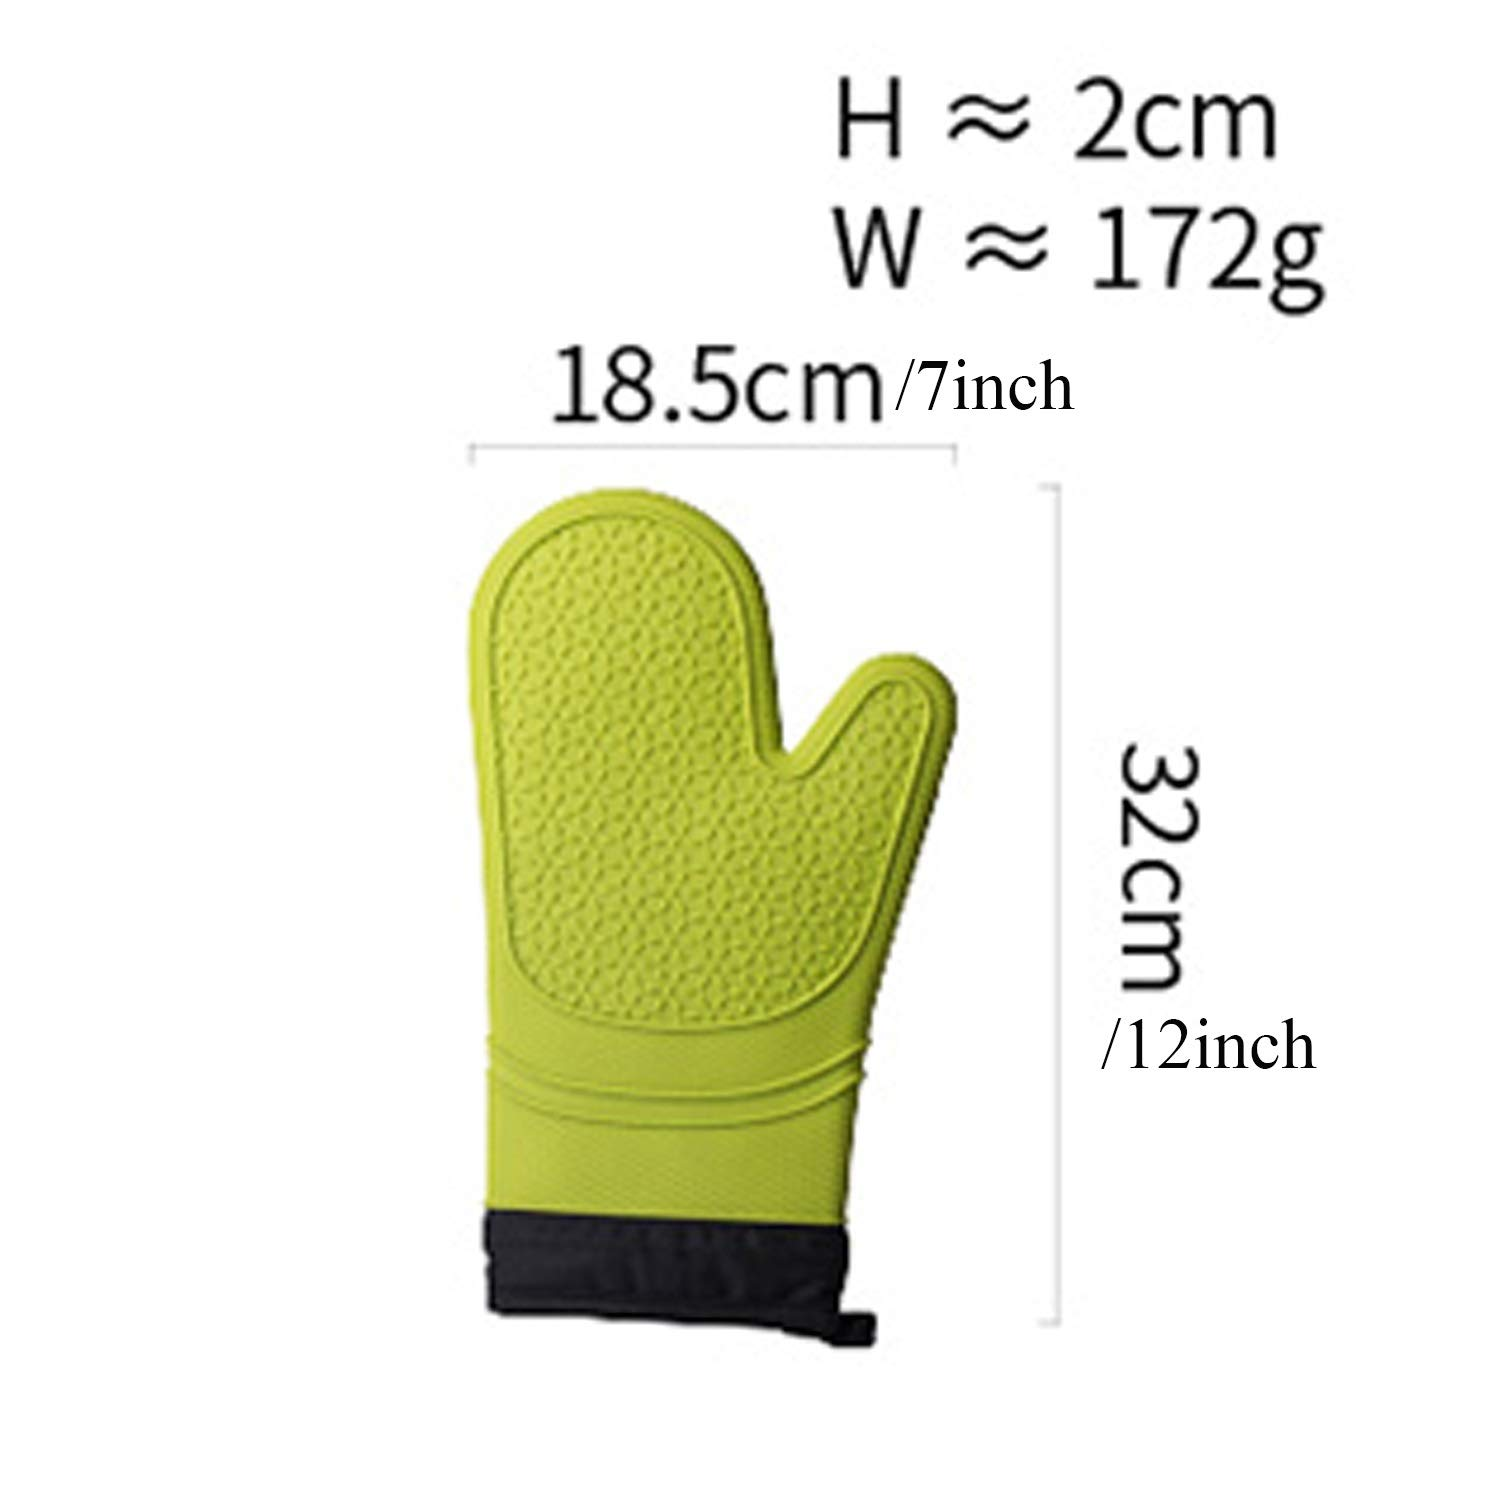 XIAOF-FEN High Temperature Resistant Anti-scalding Gloves Silicone and Cotton Insulation Baking High Temperature Resistant Modern Housewife Kitchen Anti-hot Gloves Wear-Resistant Non-Slip by XIAOF-FEN